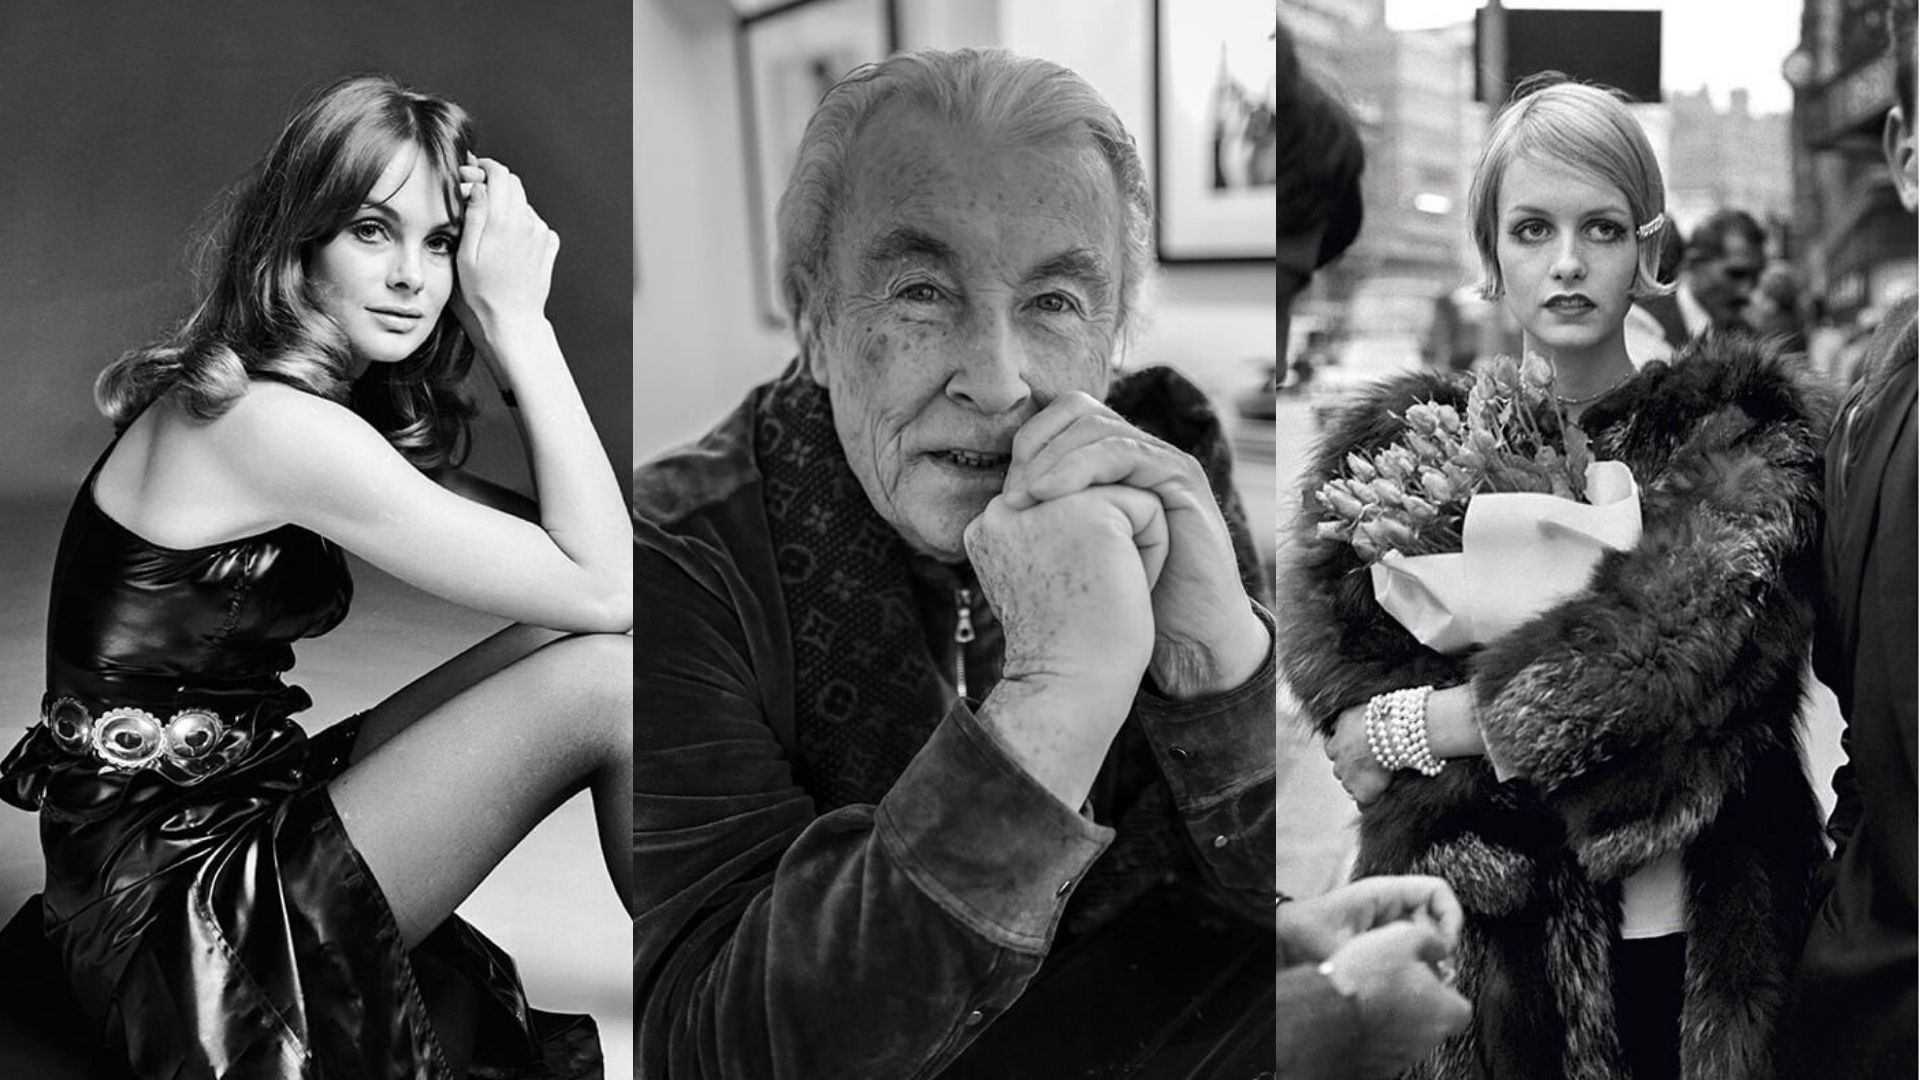 A Look At Terry O'Neill's Most Iconic Photographs